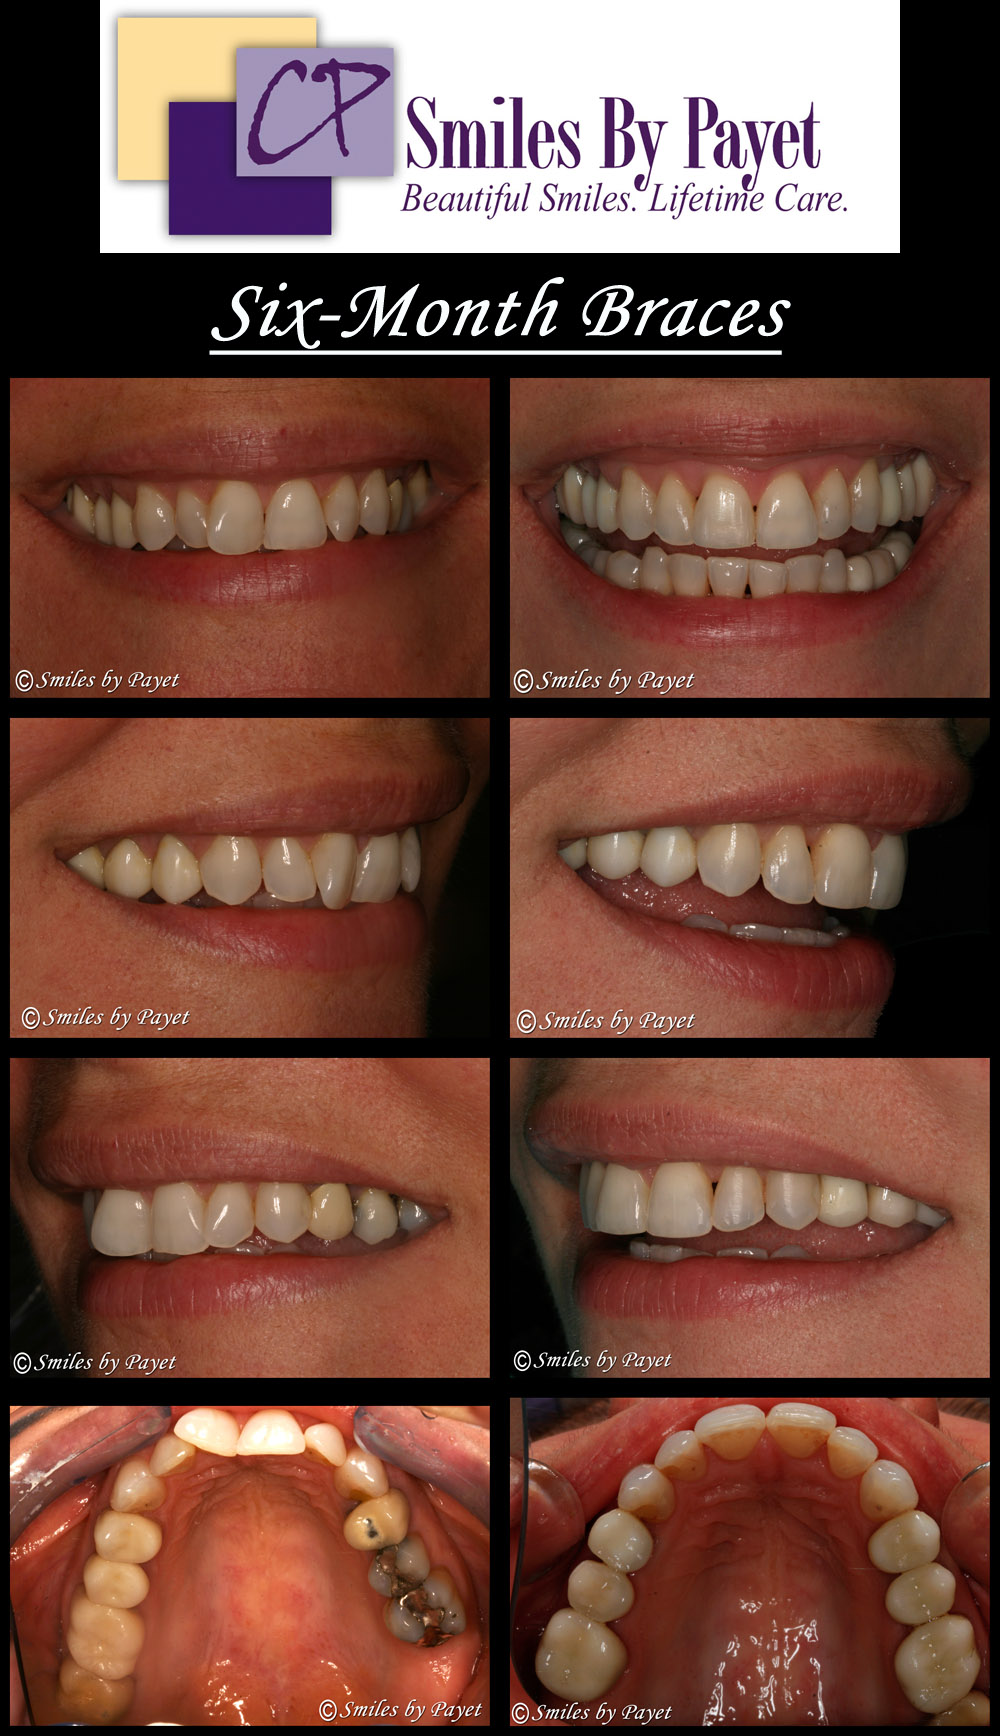 6 (Six) Month Braces treatment in the dental office of Dr. Charles Payet in Charlotte NC